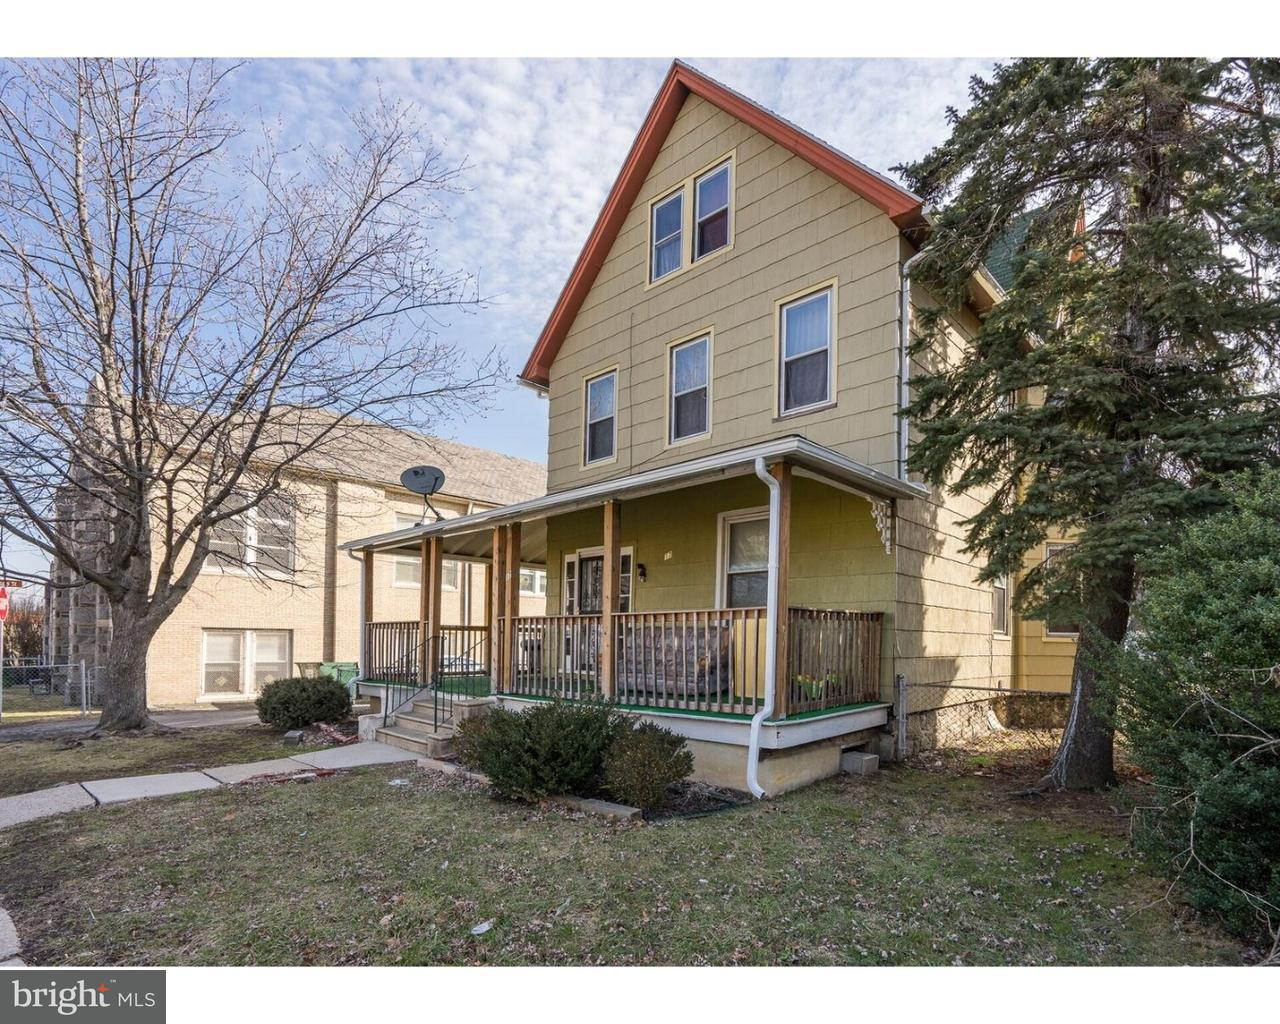 17 S 4TH ST, DARBY - Listed at $119,000, DARBY